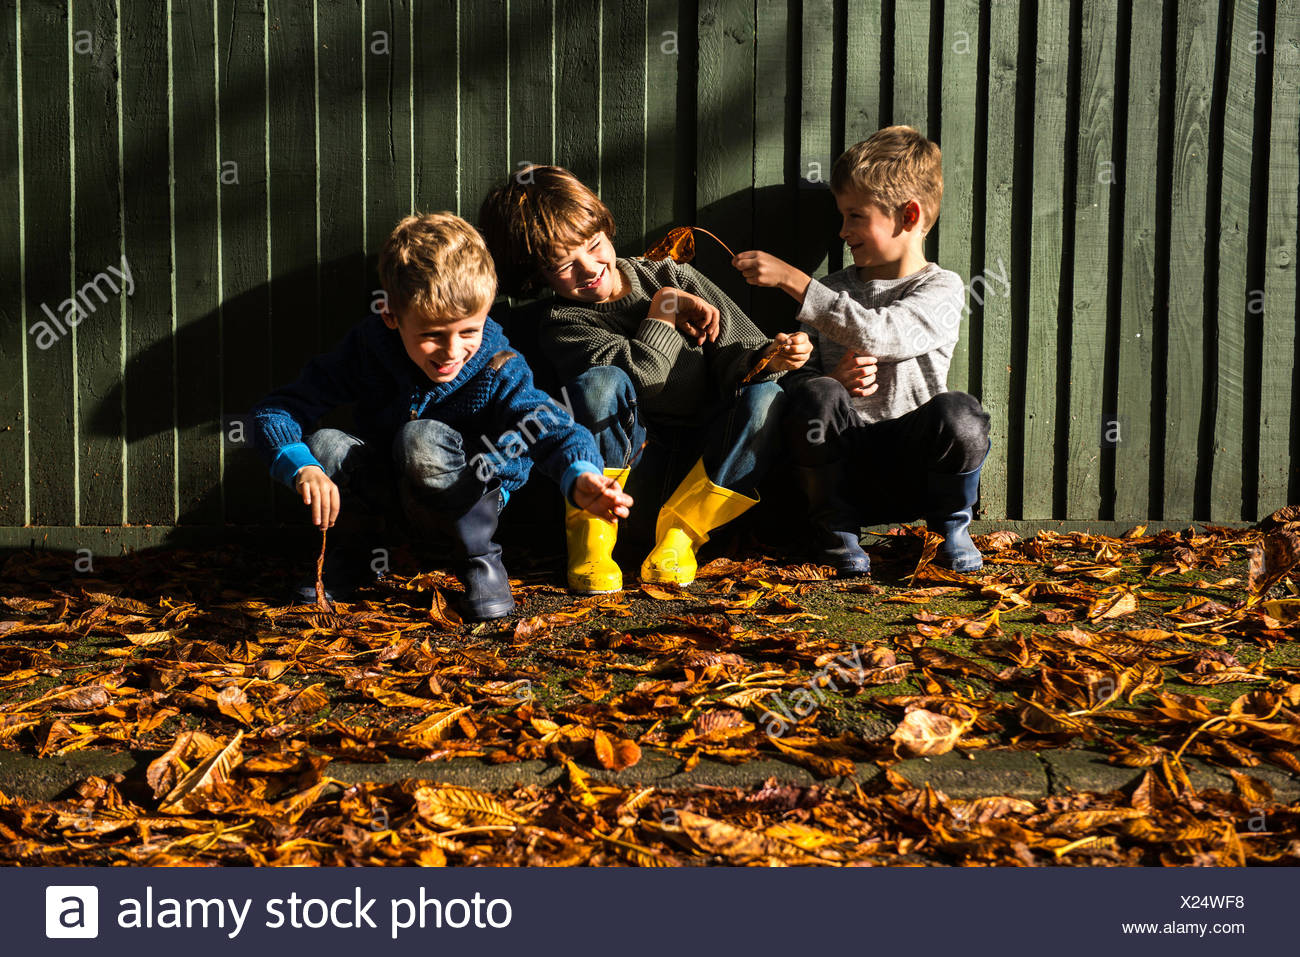 Three young boys, sitting against fence, surrounded by autumn leaves - Stock Image